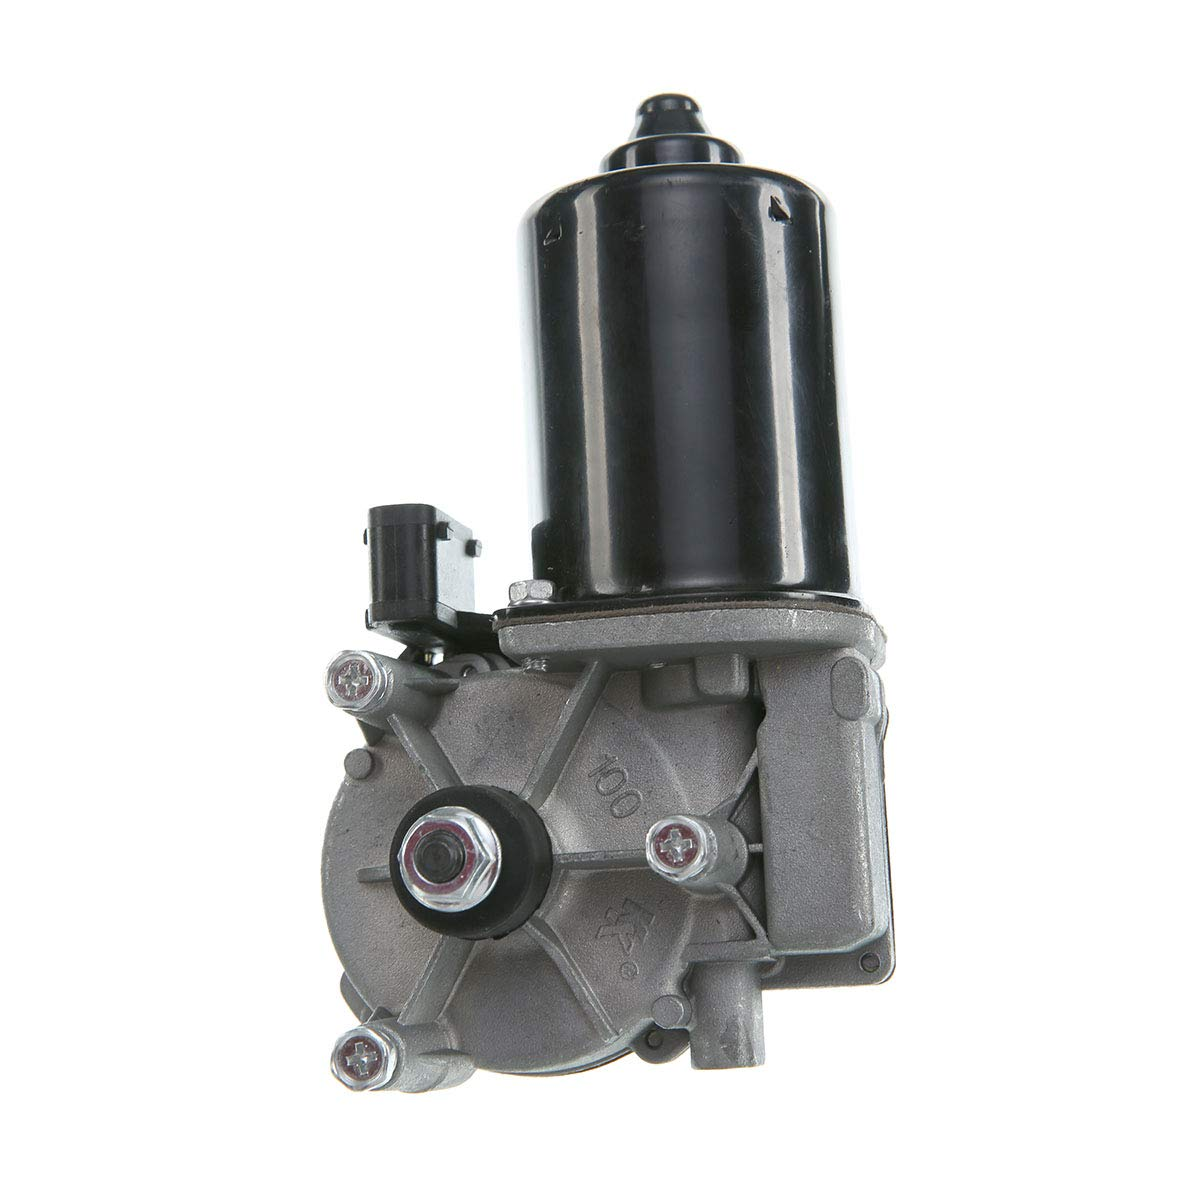 A-Premium Windshield Wiper Motor without Washer Pump for BMW X5 E53 2000-2006 Front by A-premium